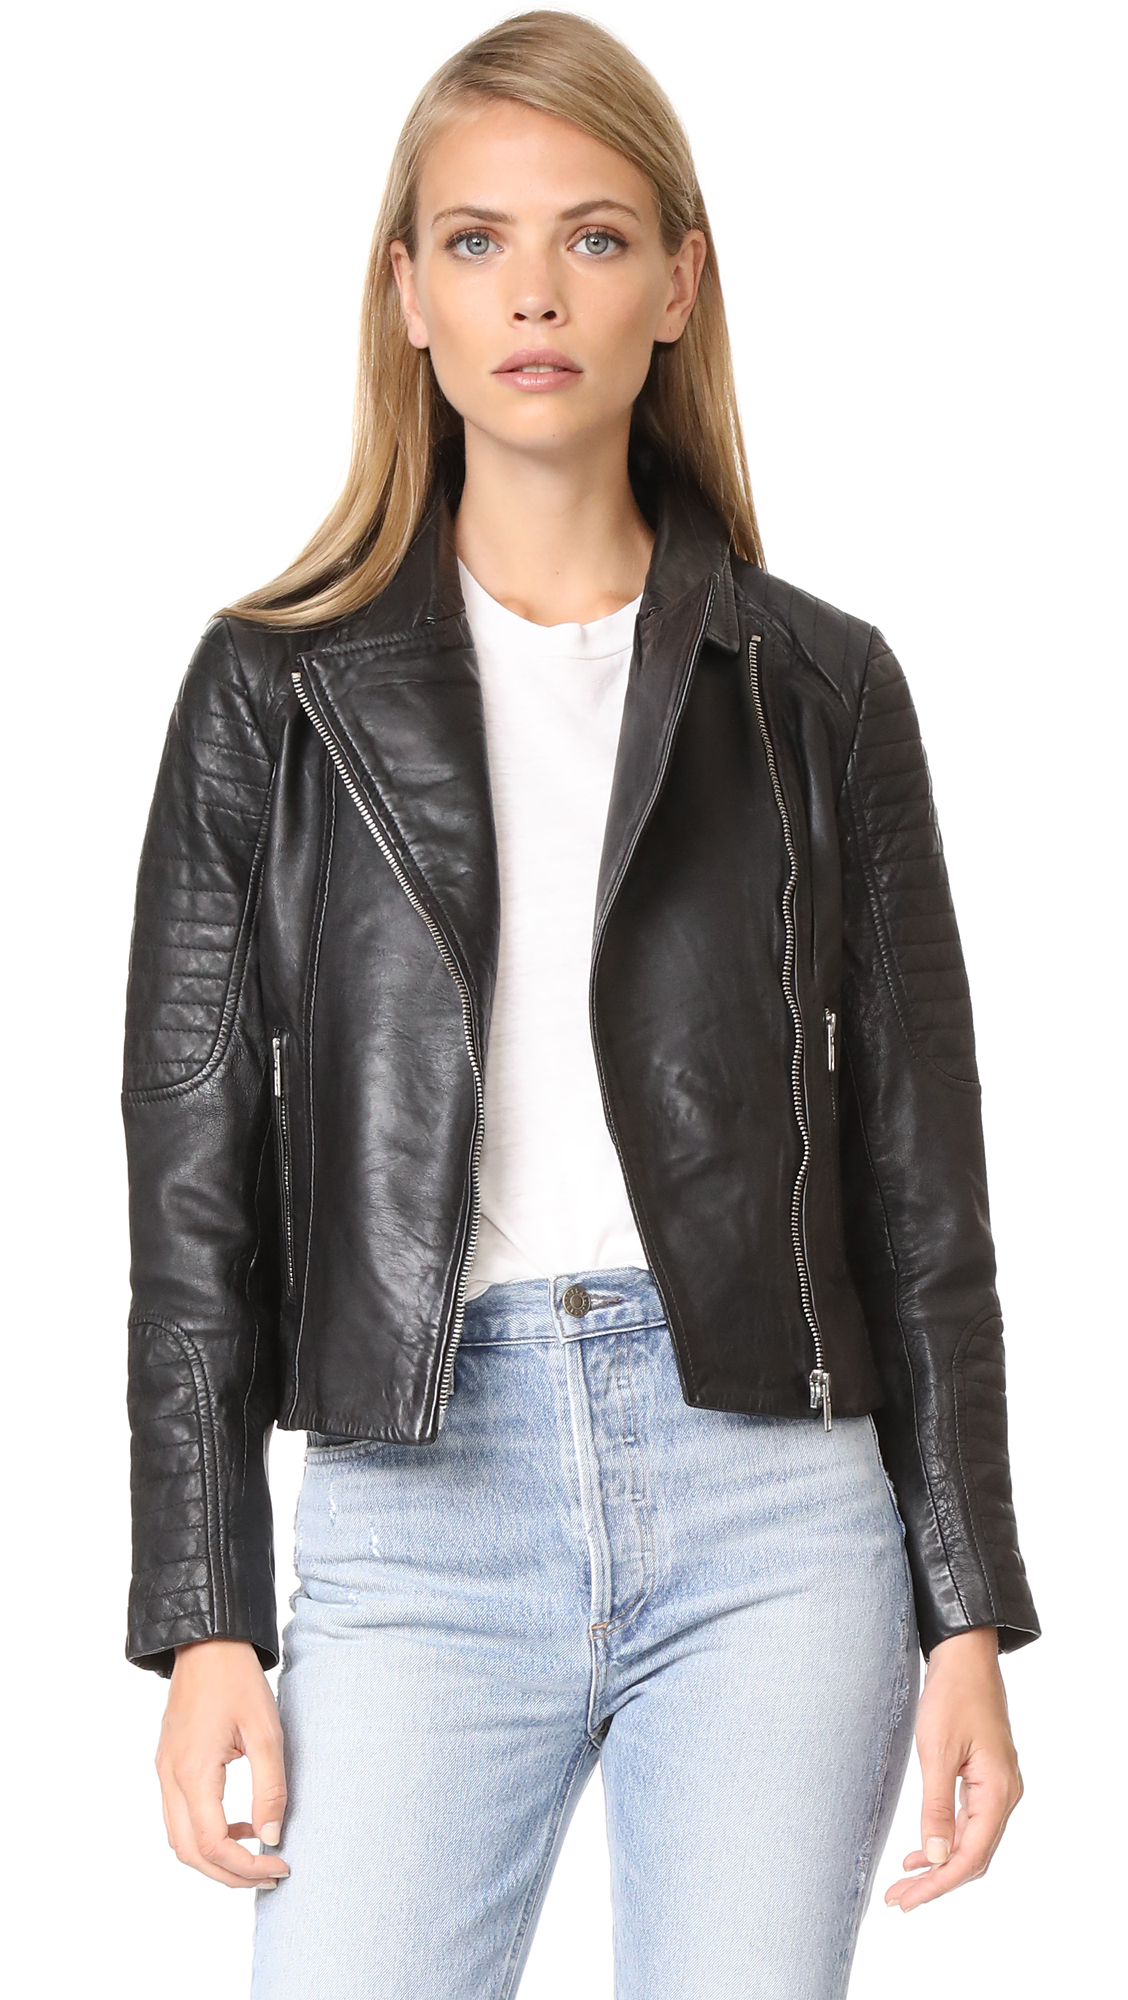 BB Dakota Dominic Leather Jacket - Black